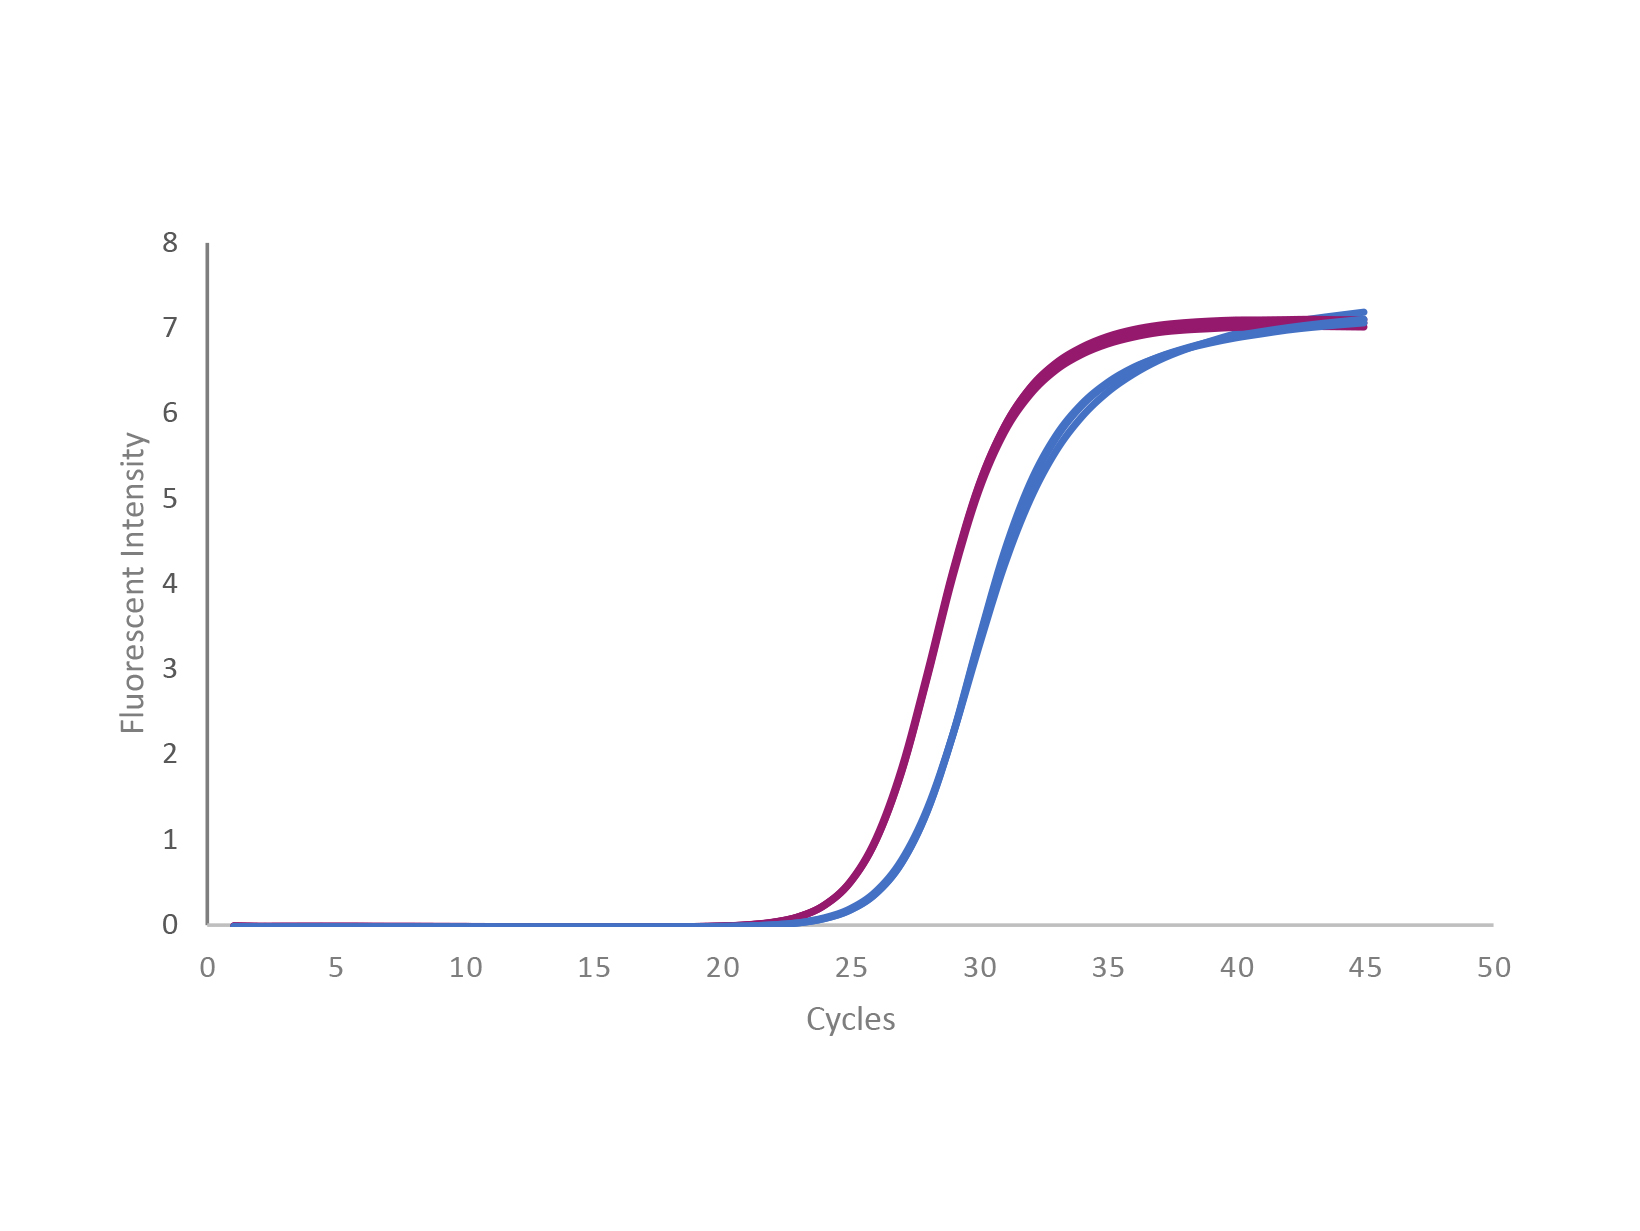 qPCR trace showing UltraScript Reverse Transcriptase versus a competitor enzymeData image of a Sypro Orange fluorescence assay comparing the melting temperature of wild type MMLV reverse transcriptase and UltraScript Reverse Transcriptase